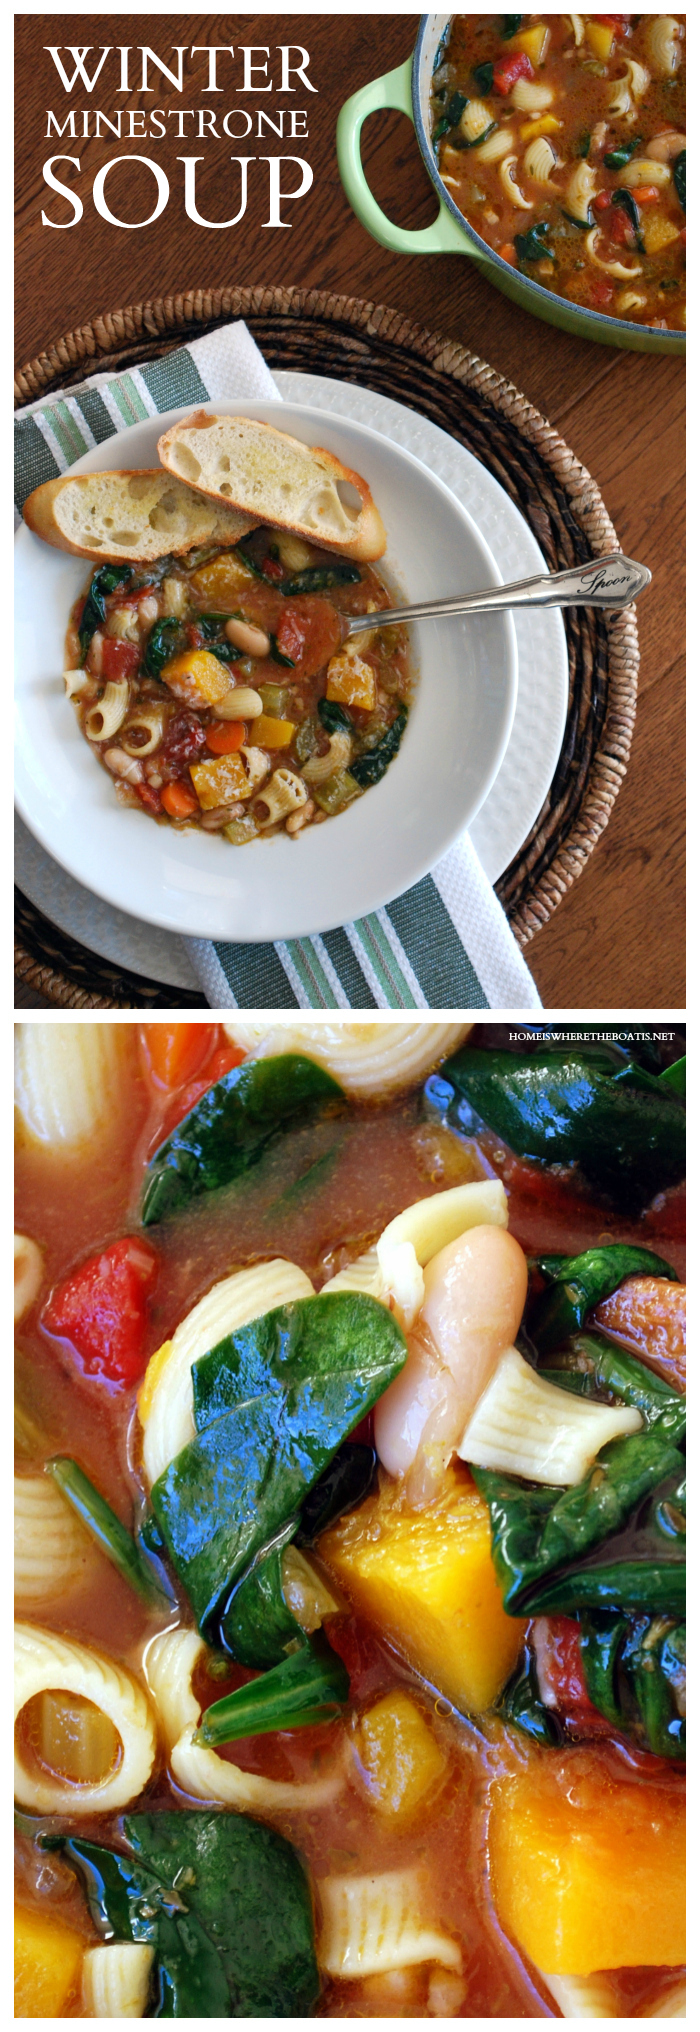 Ina Garten's Winter Minestrone. I can't say enough good things about this soup recipe…foolproof, hearty, comforting, but the proof is in the bowl.